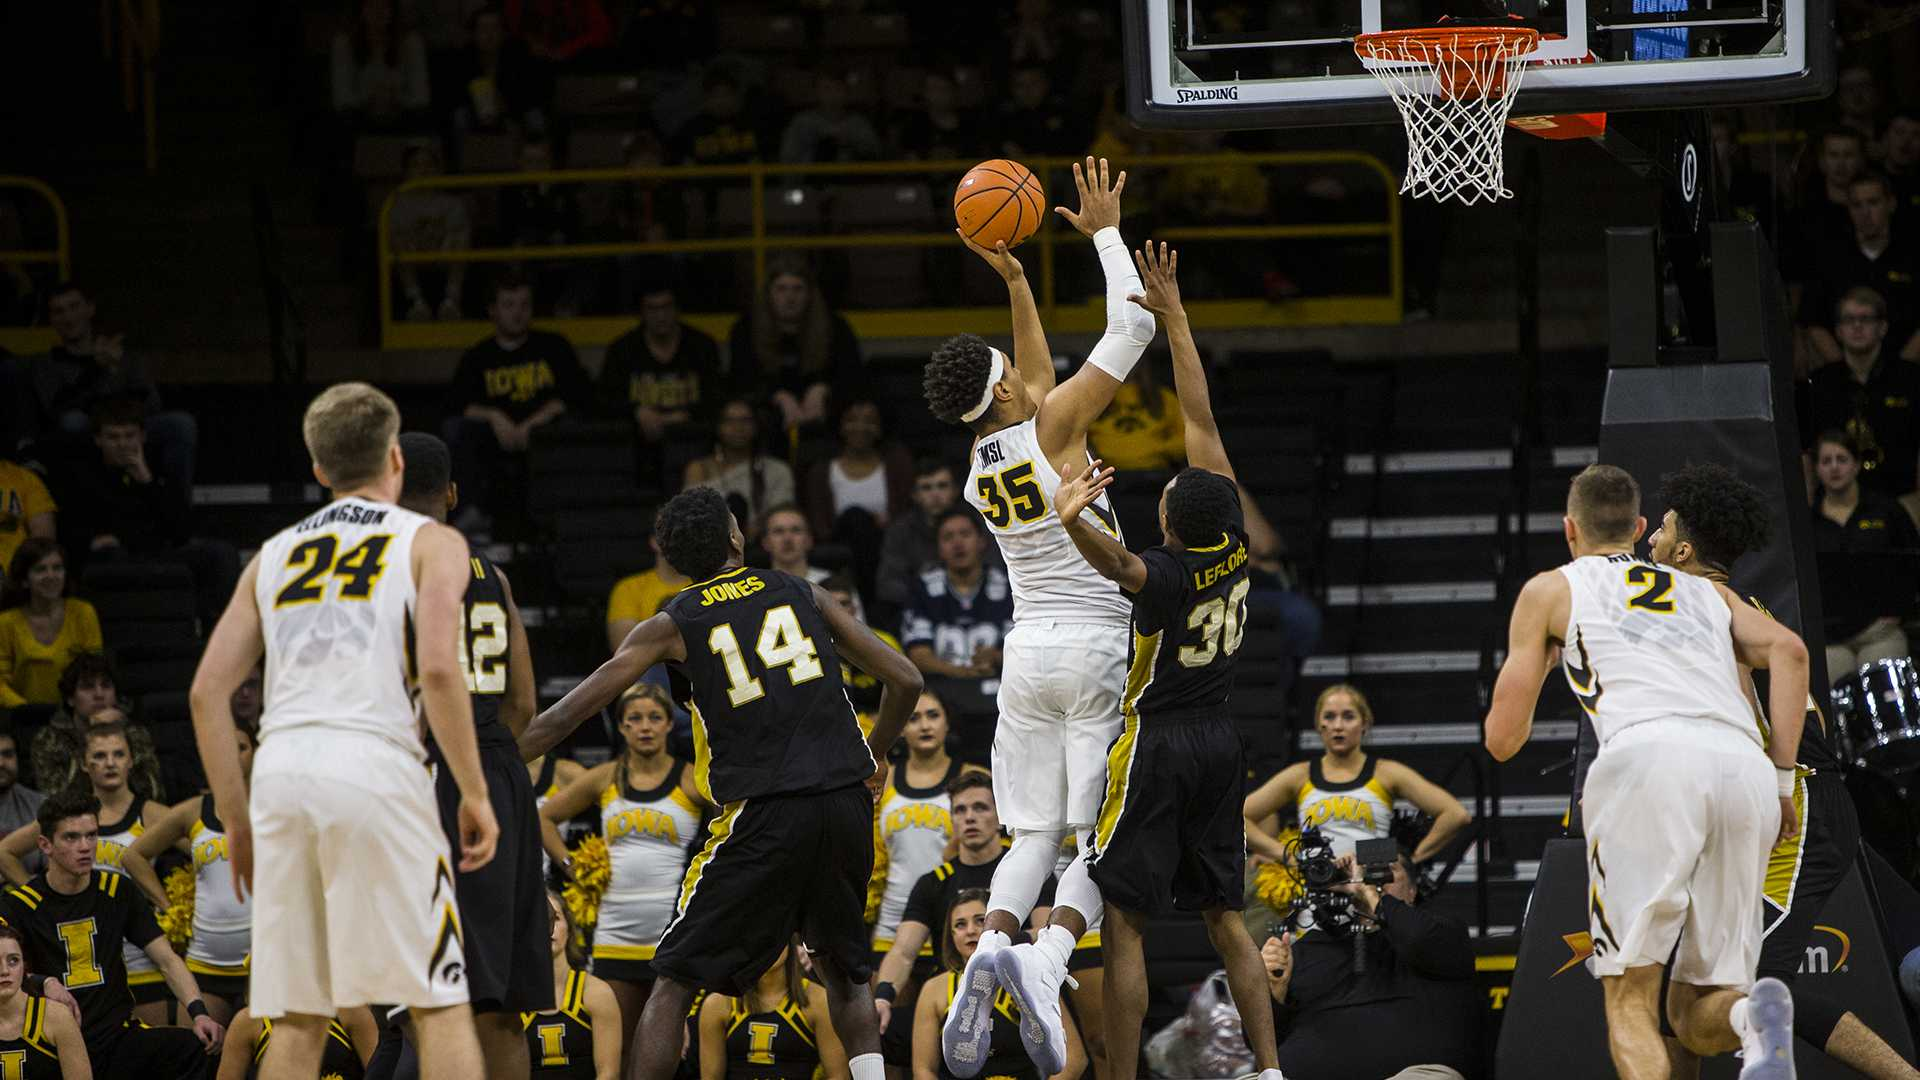 Iowa forward Cordell Pemsl goes up for a layup during Iowa's game against Alabama State at Carver-Hawkeye Arena on Sunday, Nov. 12, 2017. The Hawkeyes defeated the Hornetts 92-58. (Nick Rohlman/The Daily Iowan)